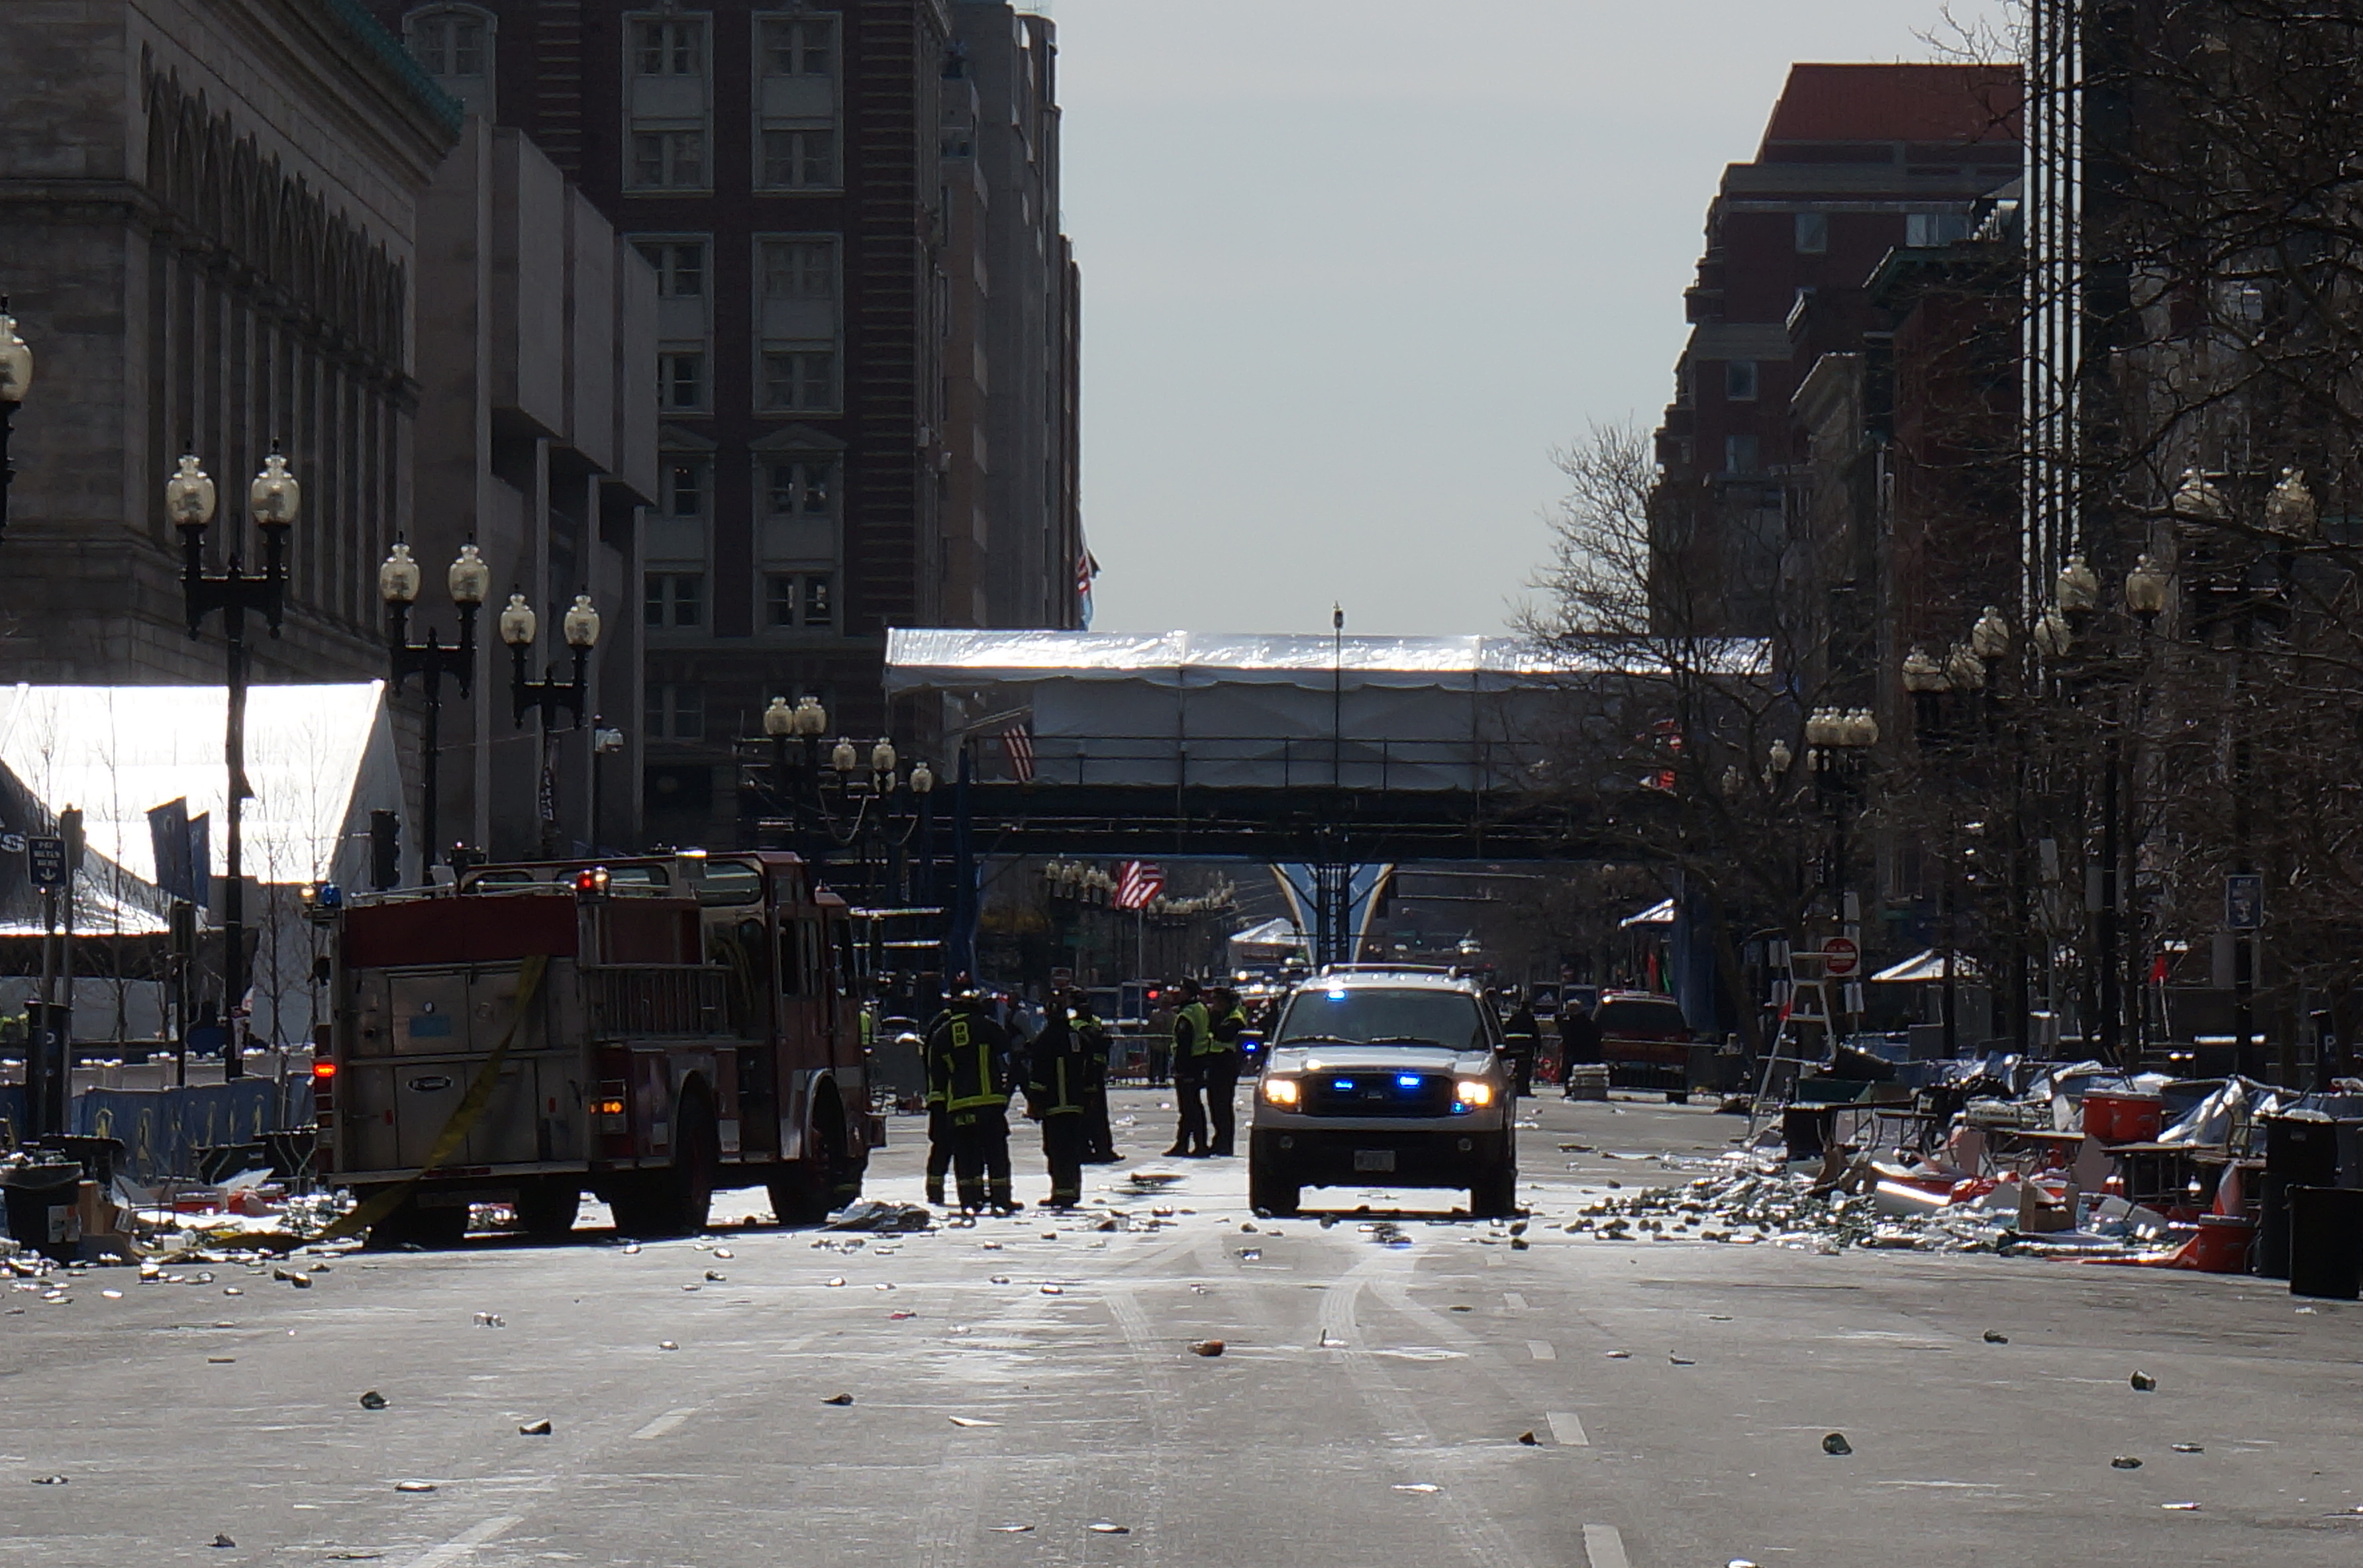 Aaron Tang took pictures overlooking the scene of the first bomb explosion at the 2013 Boston Marathon.